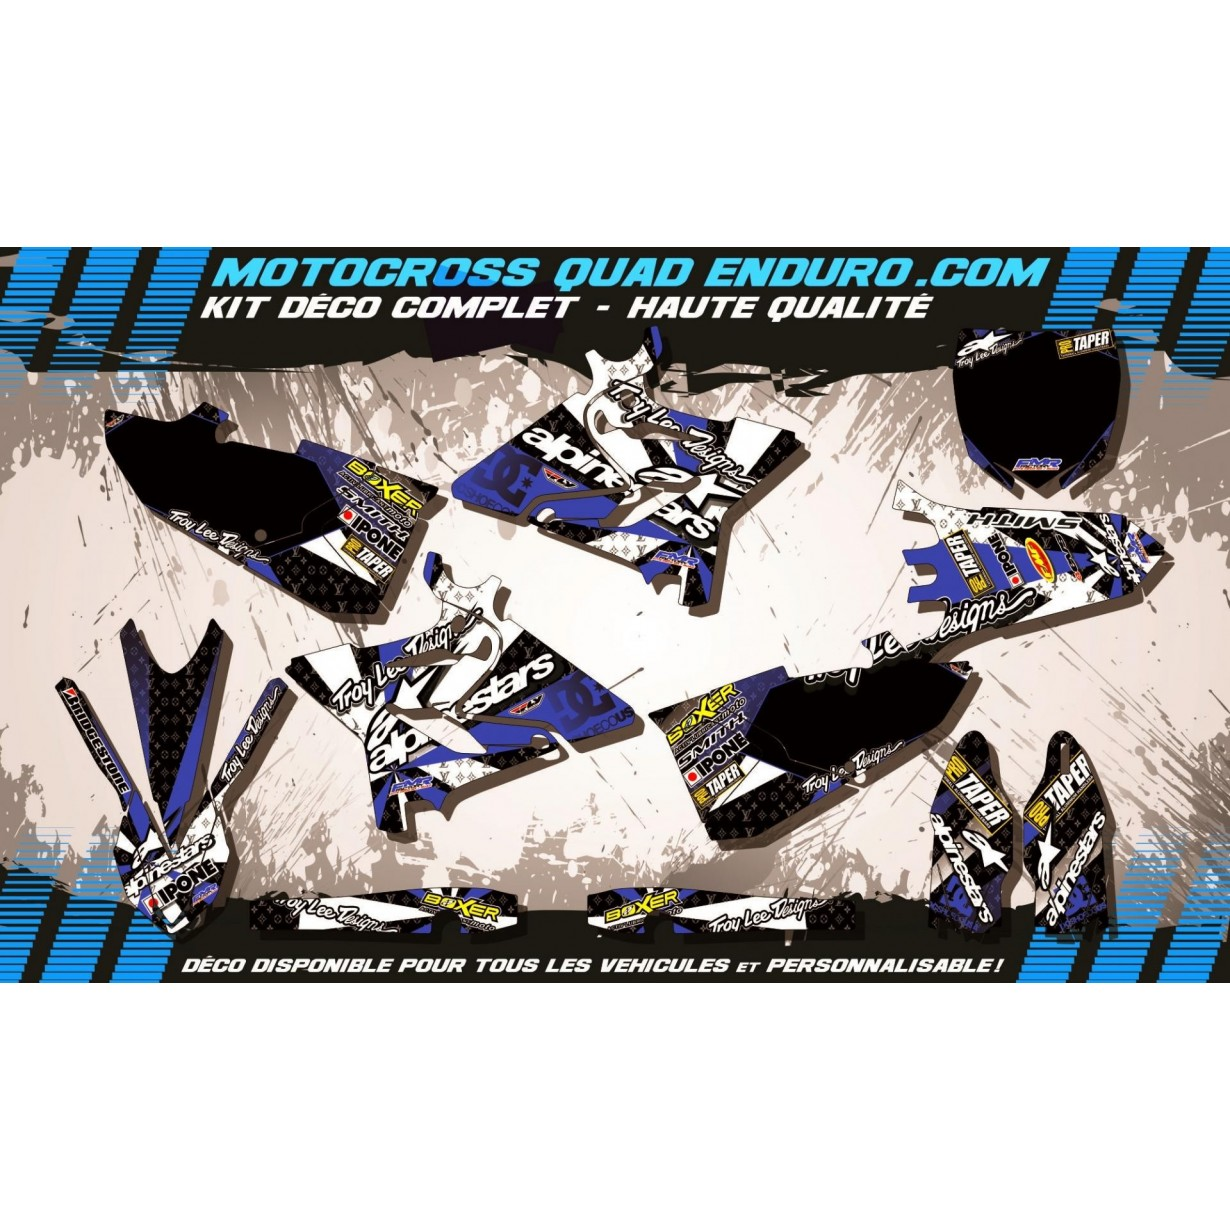 Kit deco f1047 a4d yz 125 250 15 17 m